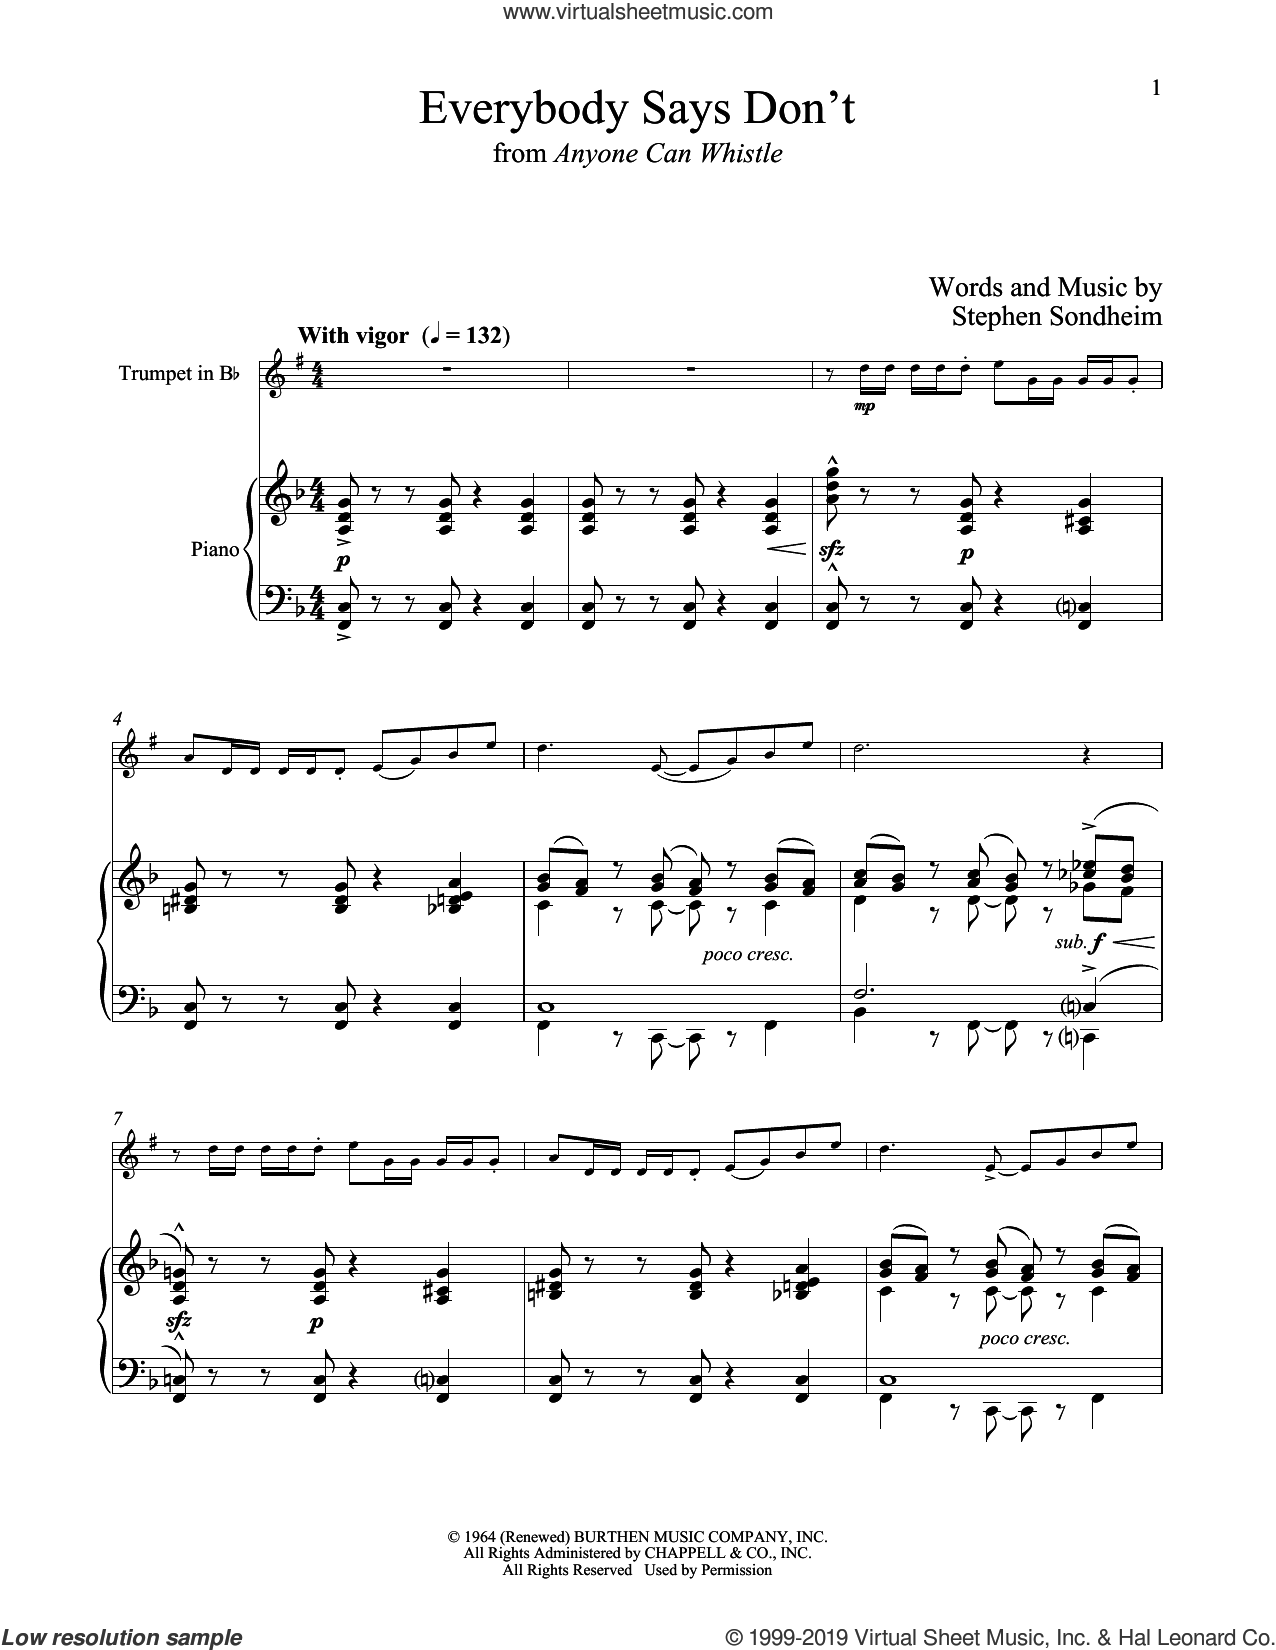 Everybody Says Don't (from Anyone Can Whistle) sheet music for trumpet and piano by Stephen Sondheim, intermediate skill level